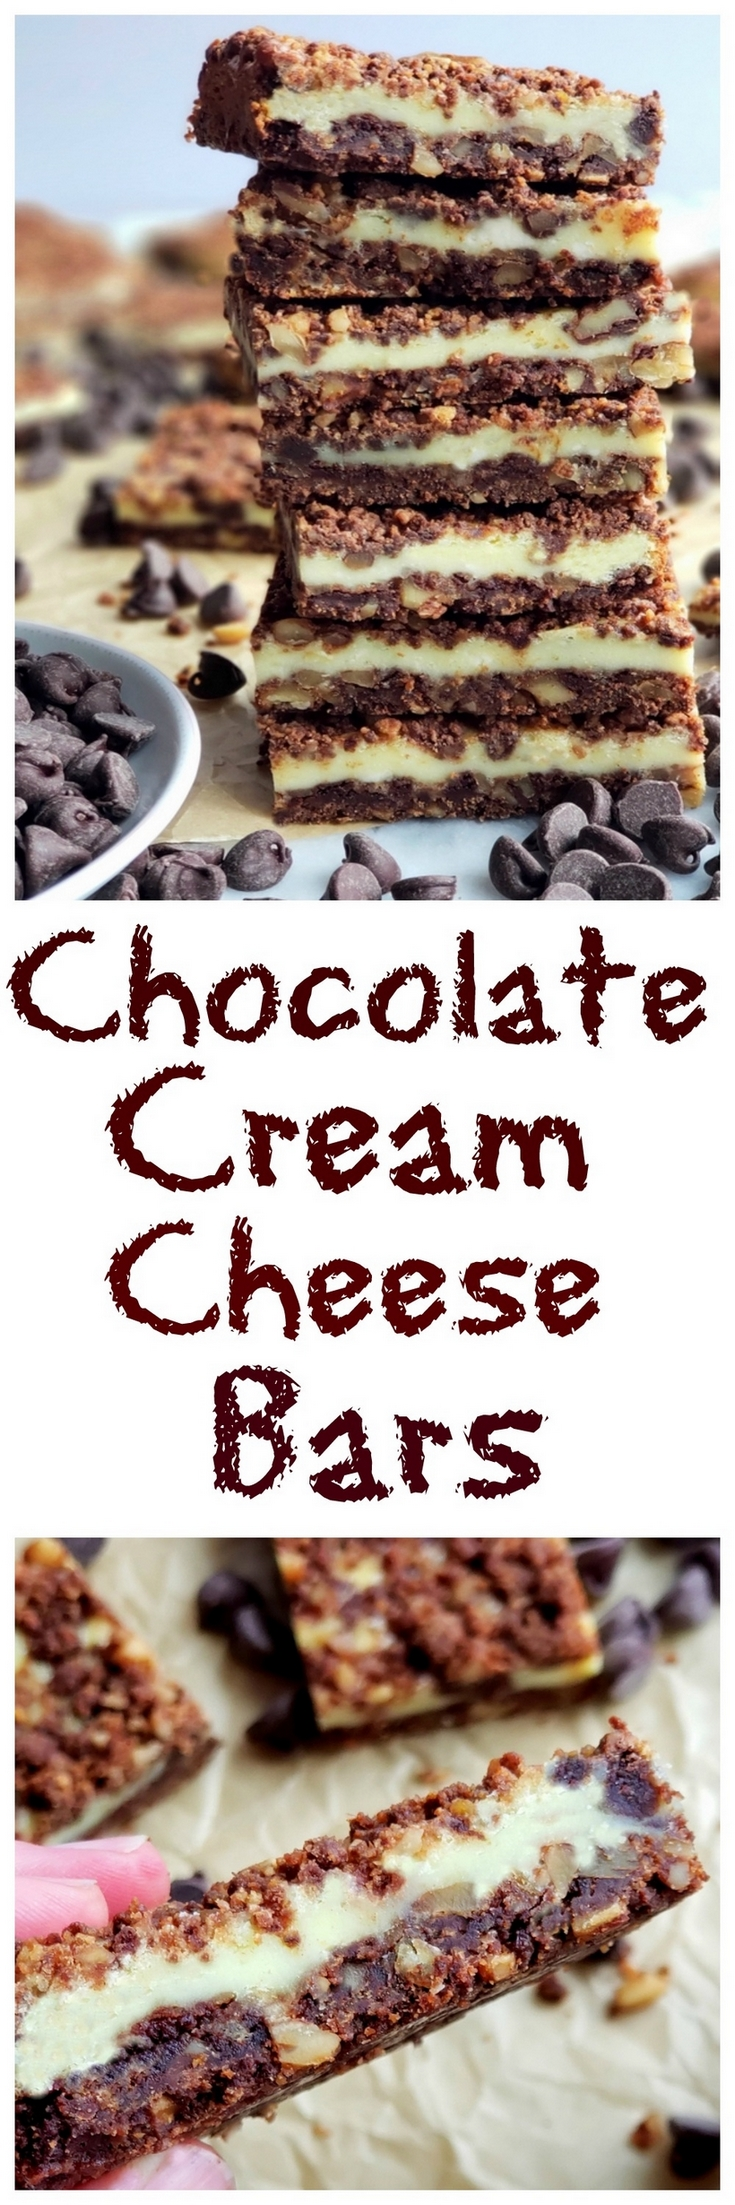 Perfect for any occasion, these Chocolate Cream Cheese Bars feature a unique chocolate graham cracker crust and topping, with a creamy middle layer. #creamcheesedessert via @cmpollak1